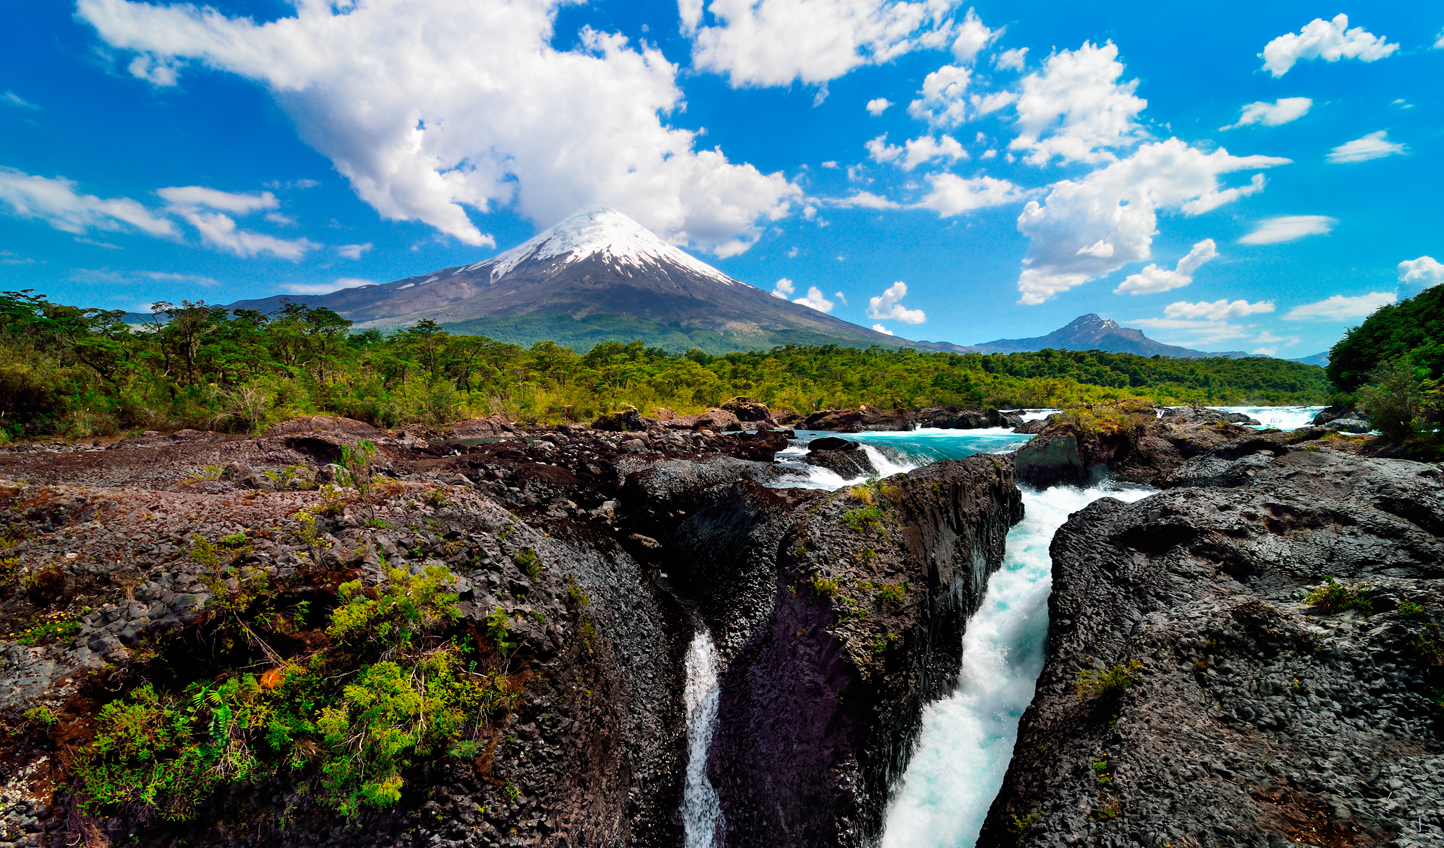 Enjoy majestic views of Osorno Volcano